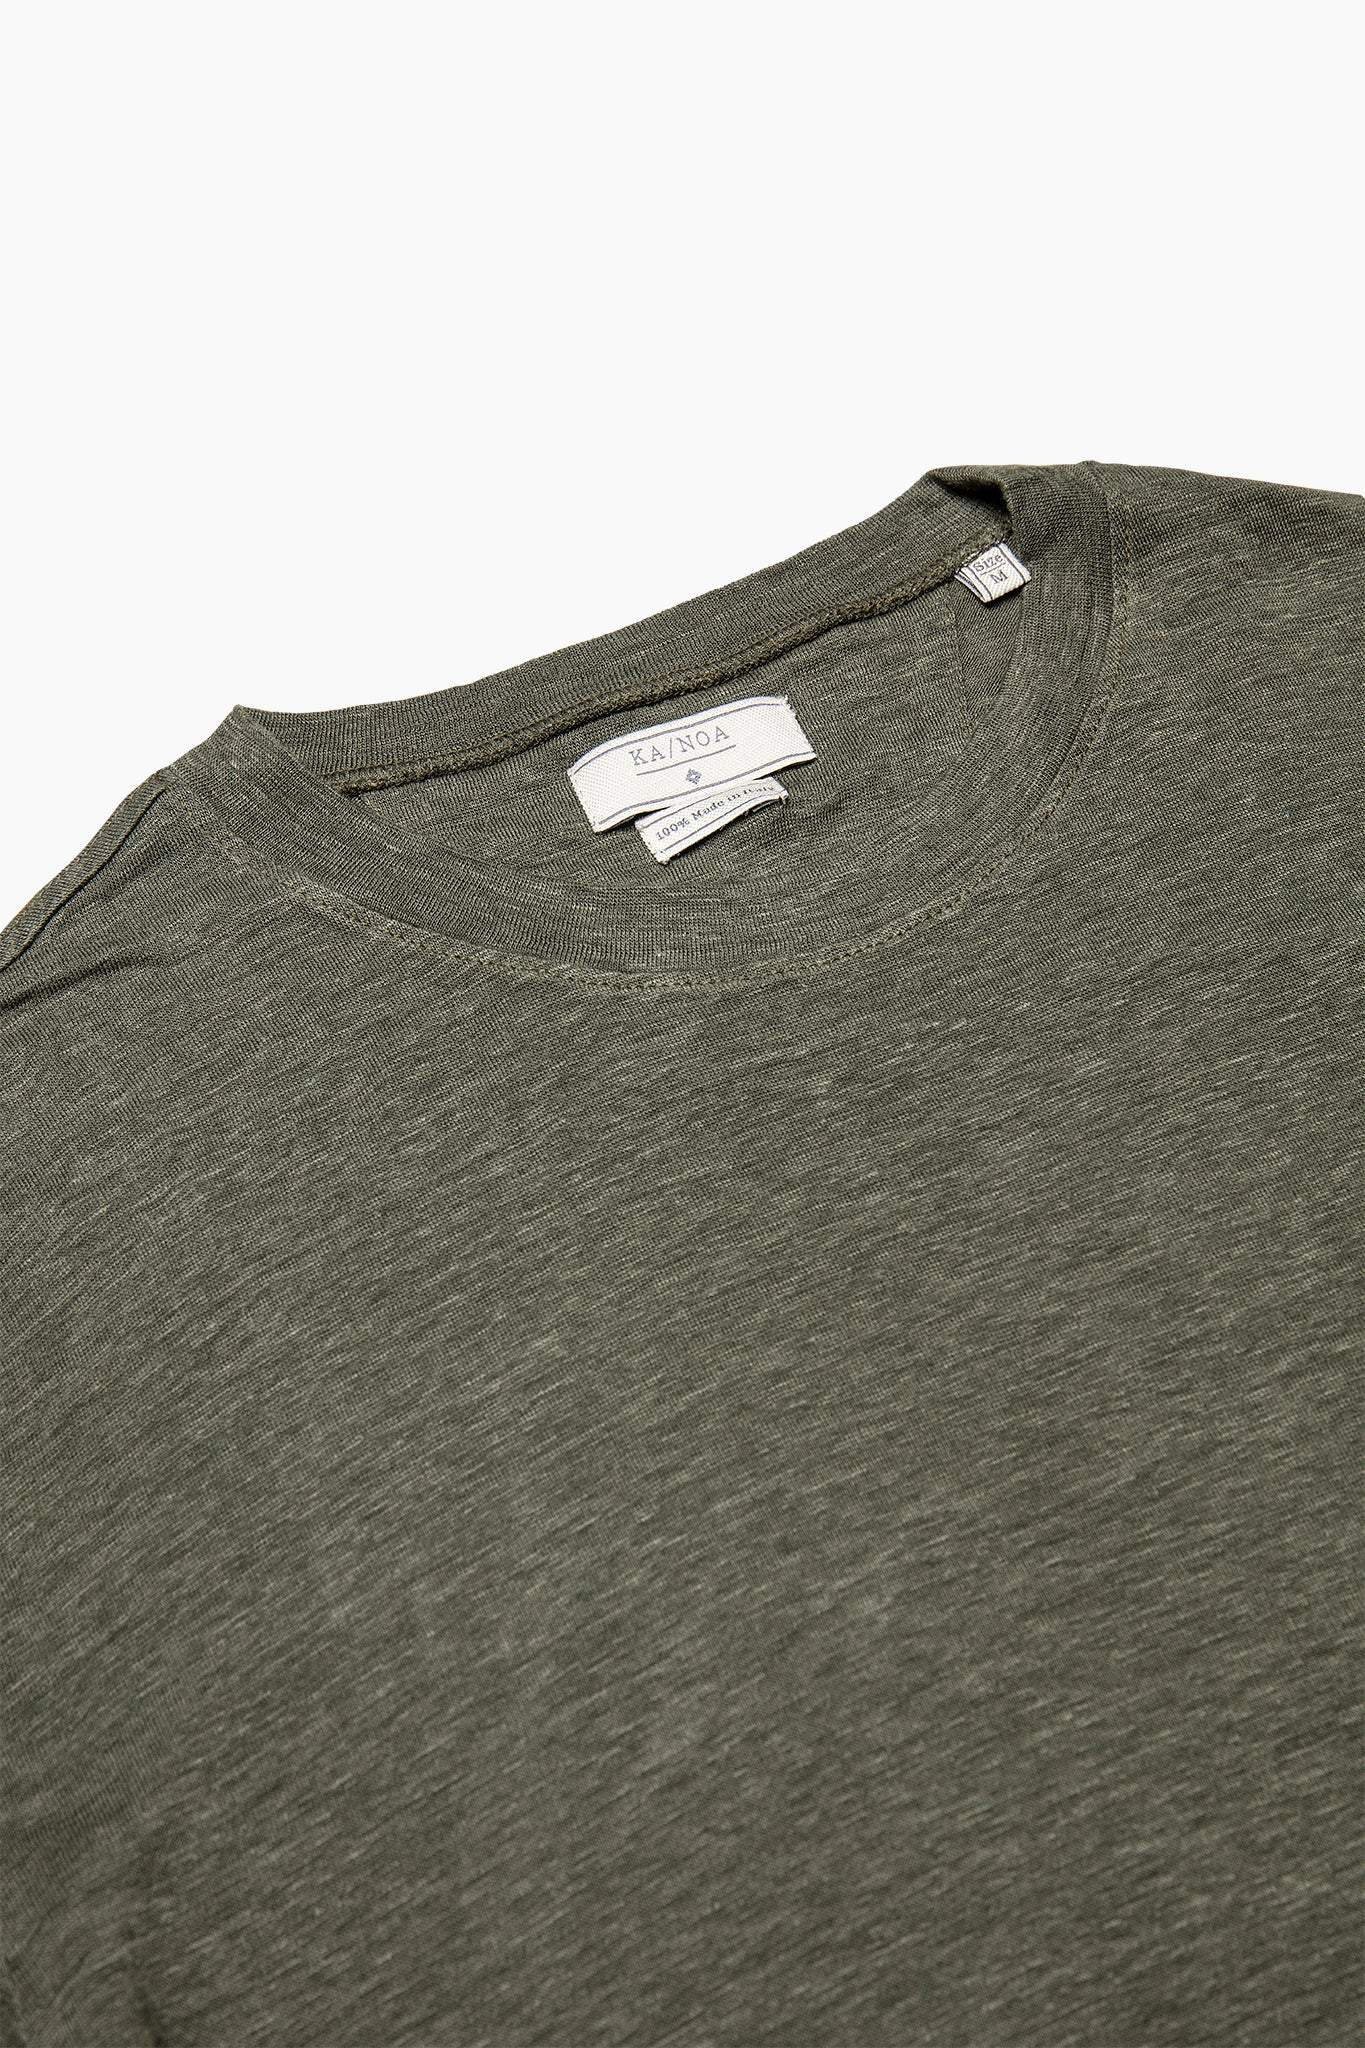 Eliè long-sleeved t-shirt in light linen jersey (foliage green)